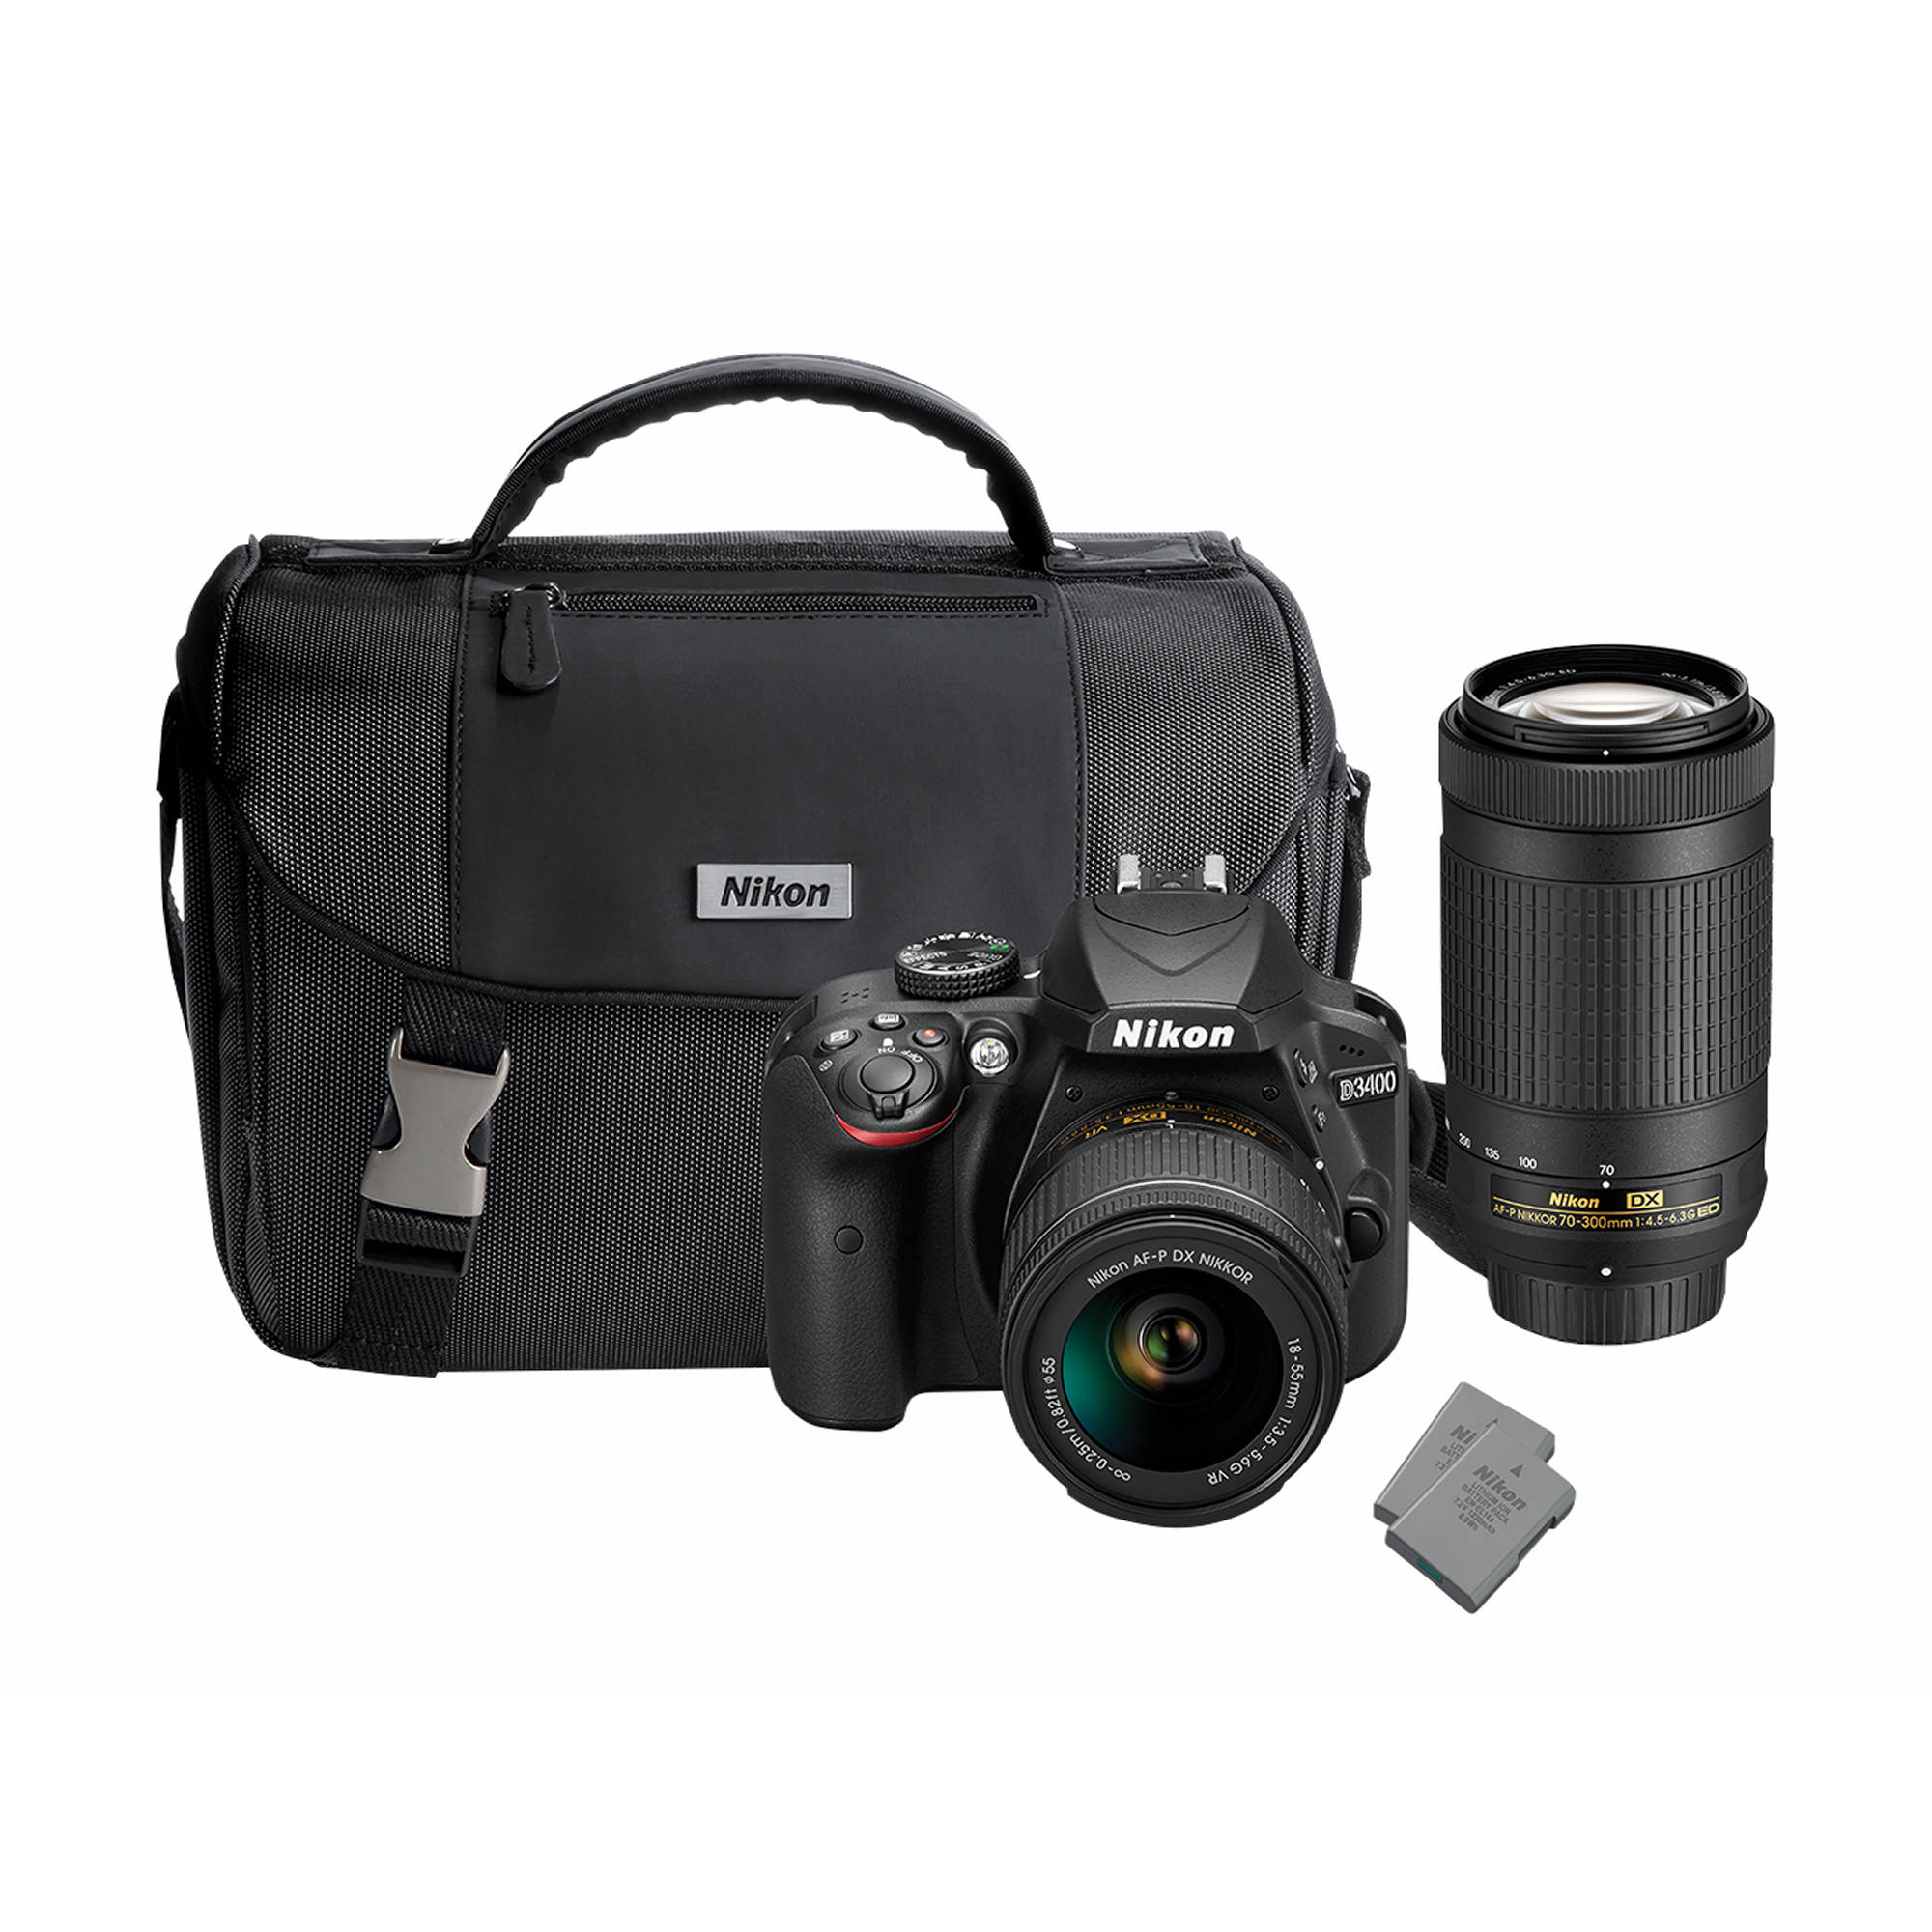 Nikon D3400 24.2MP CMOS DSLR Camera with 18-55mm VR and 70-300mm Lens, 32GB SD Card and Case